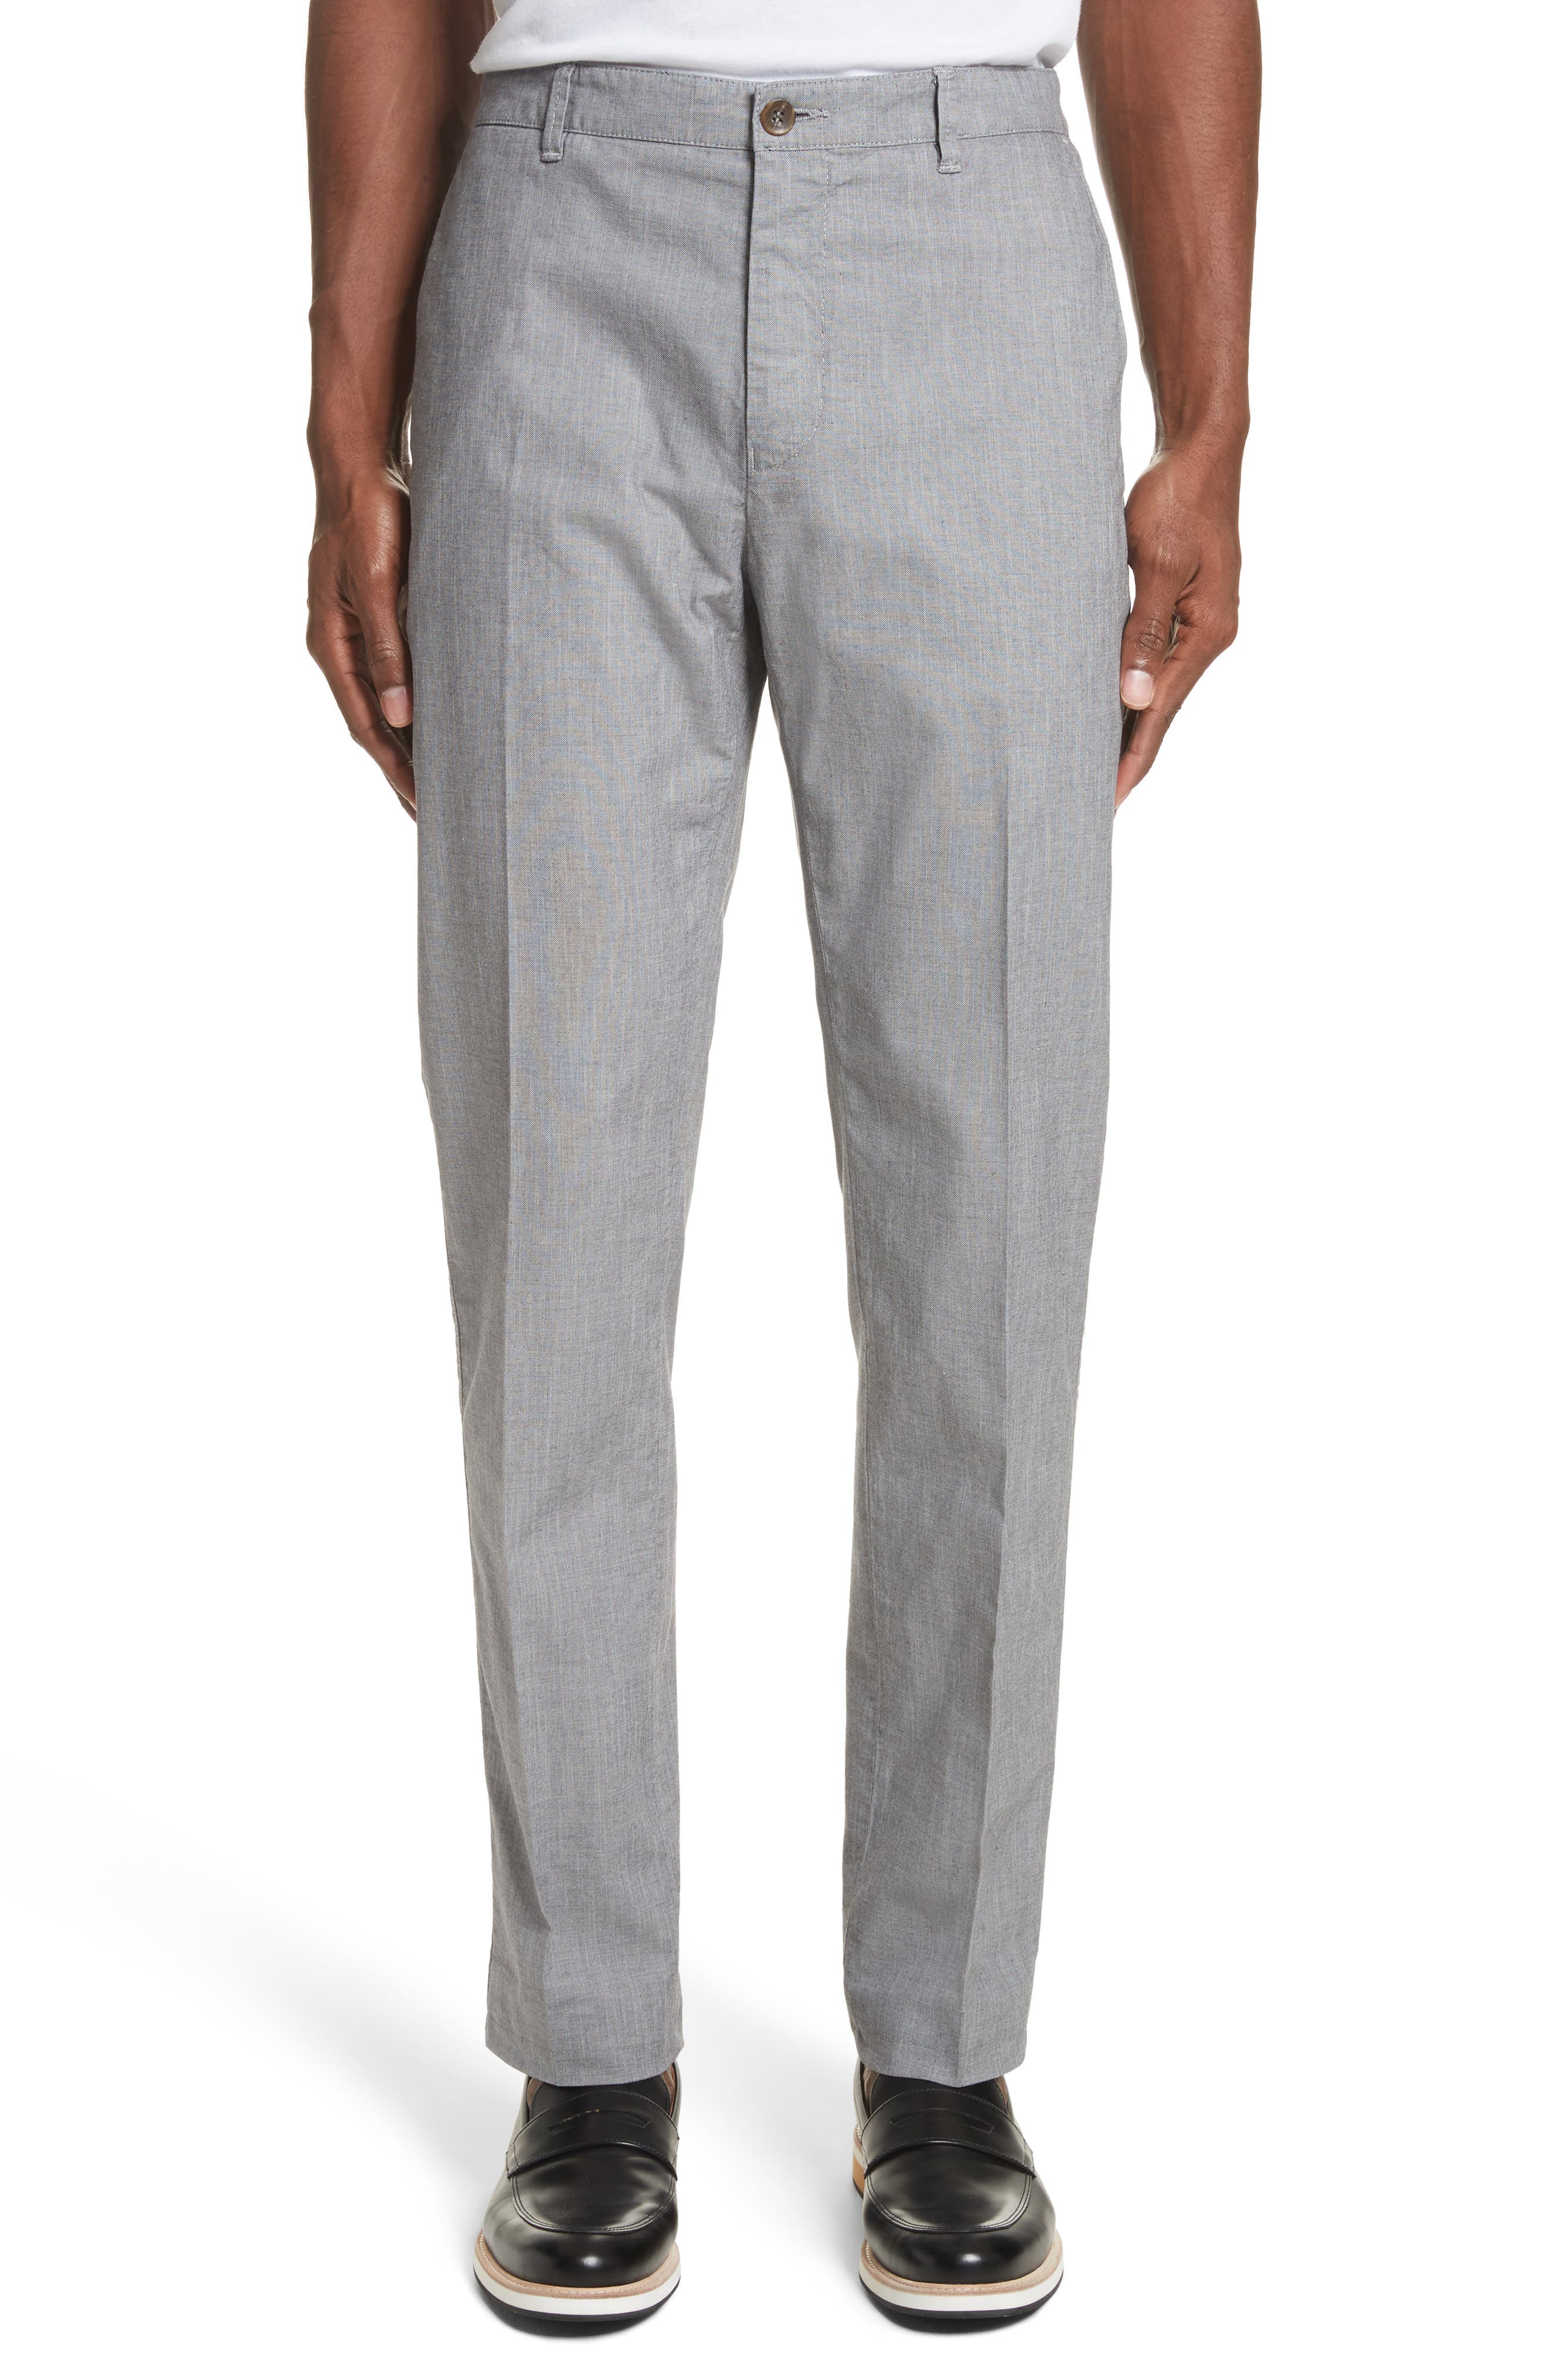 French Pocket Stretch Straight Leg Pants,                         Main,                         color, 020